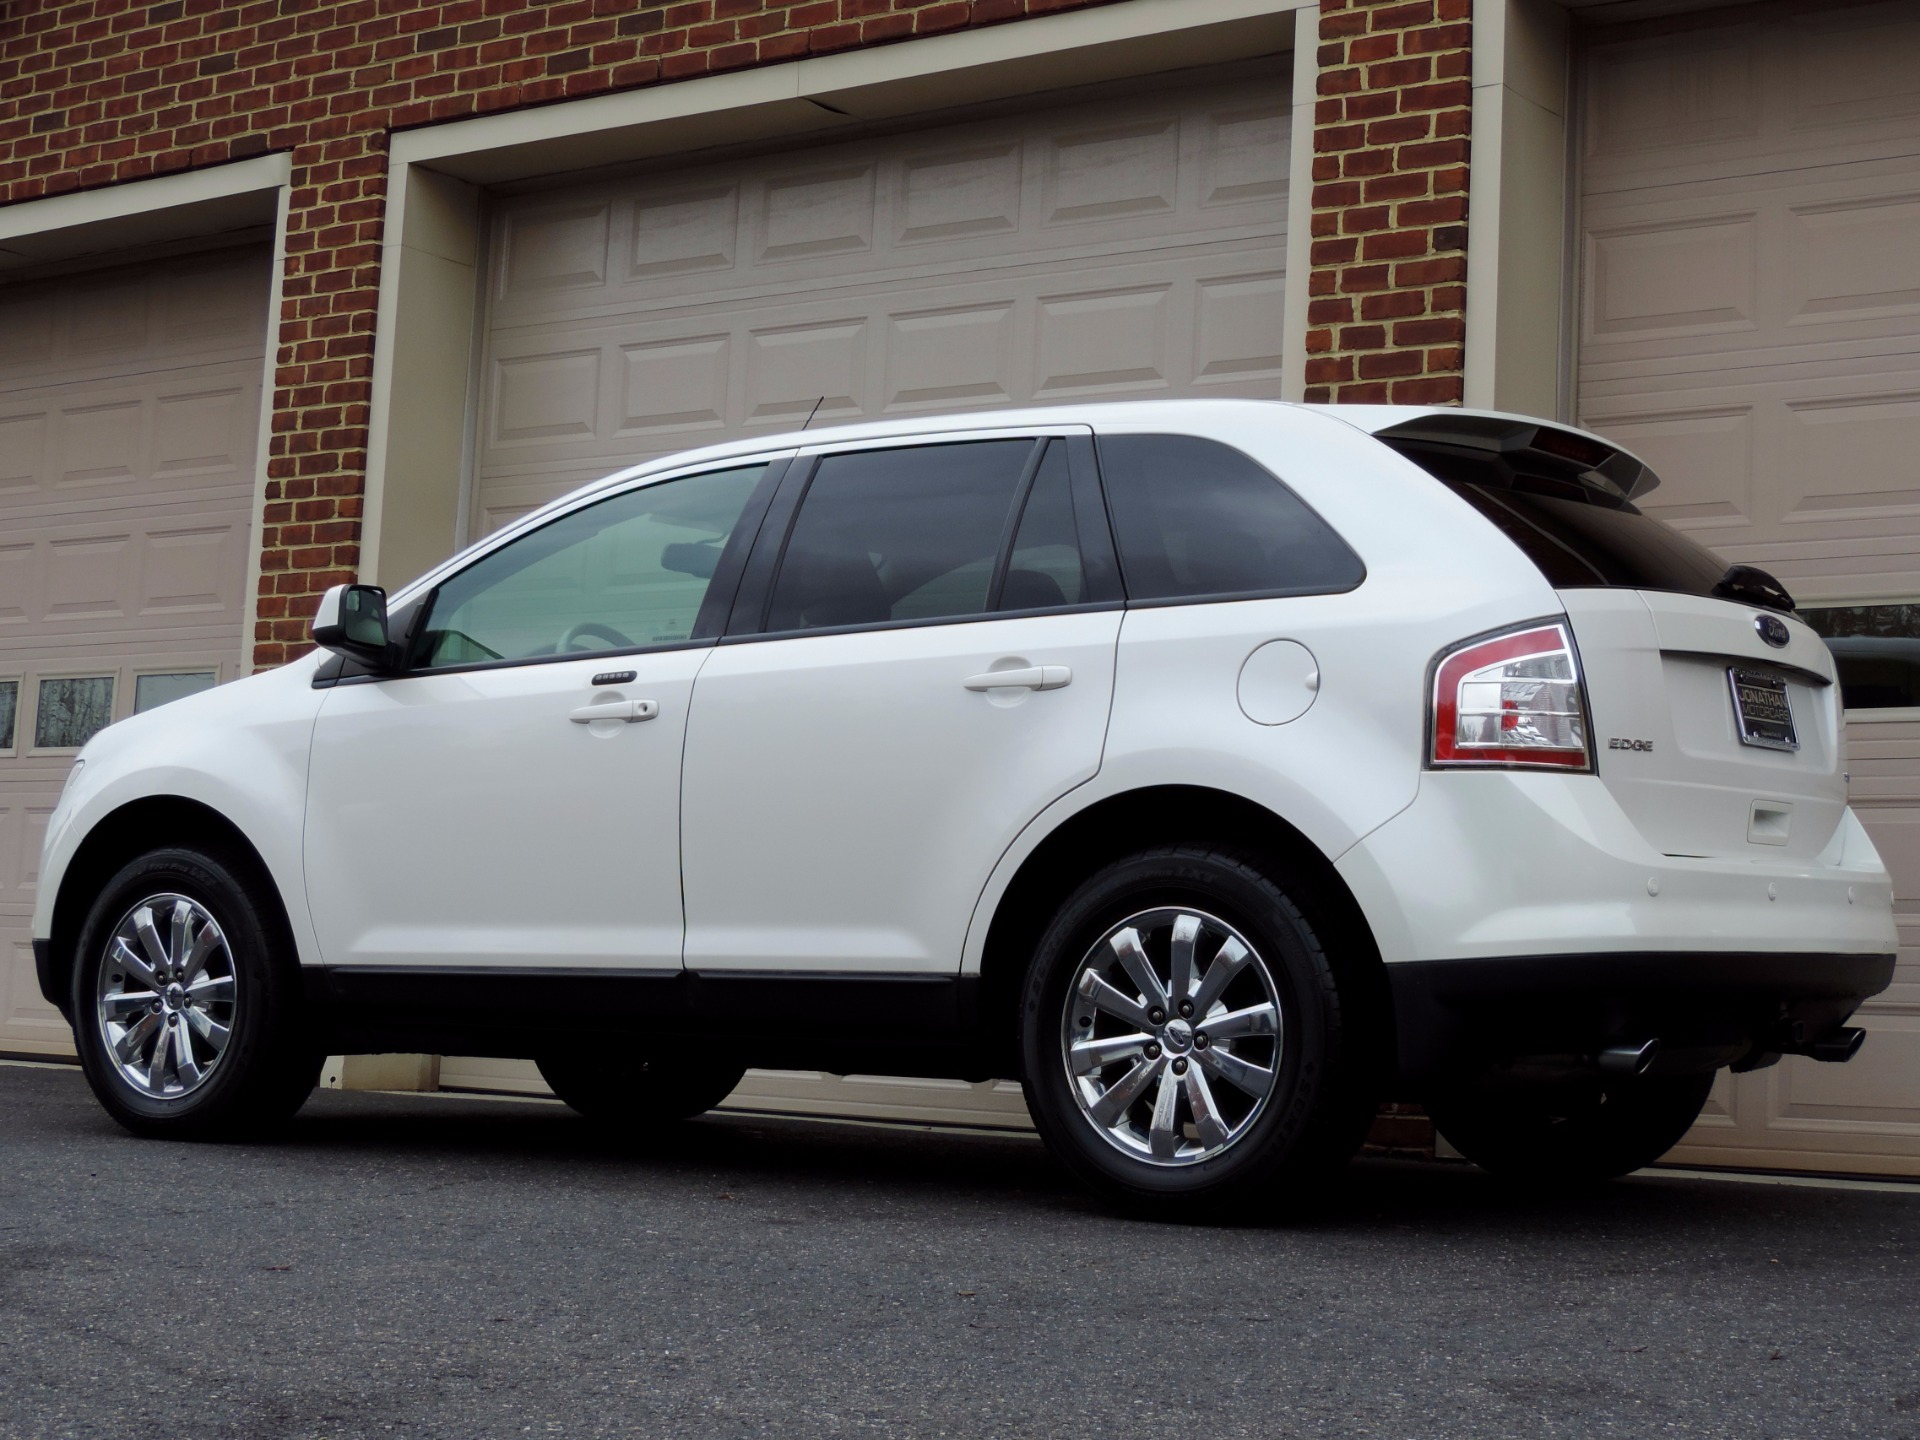 2010 Ford Edge Sel Stock A55120 For Sale Near Edgewater